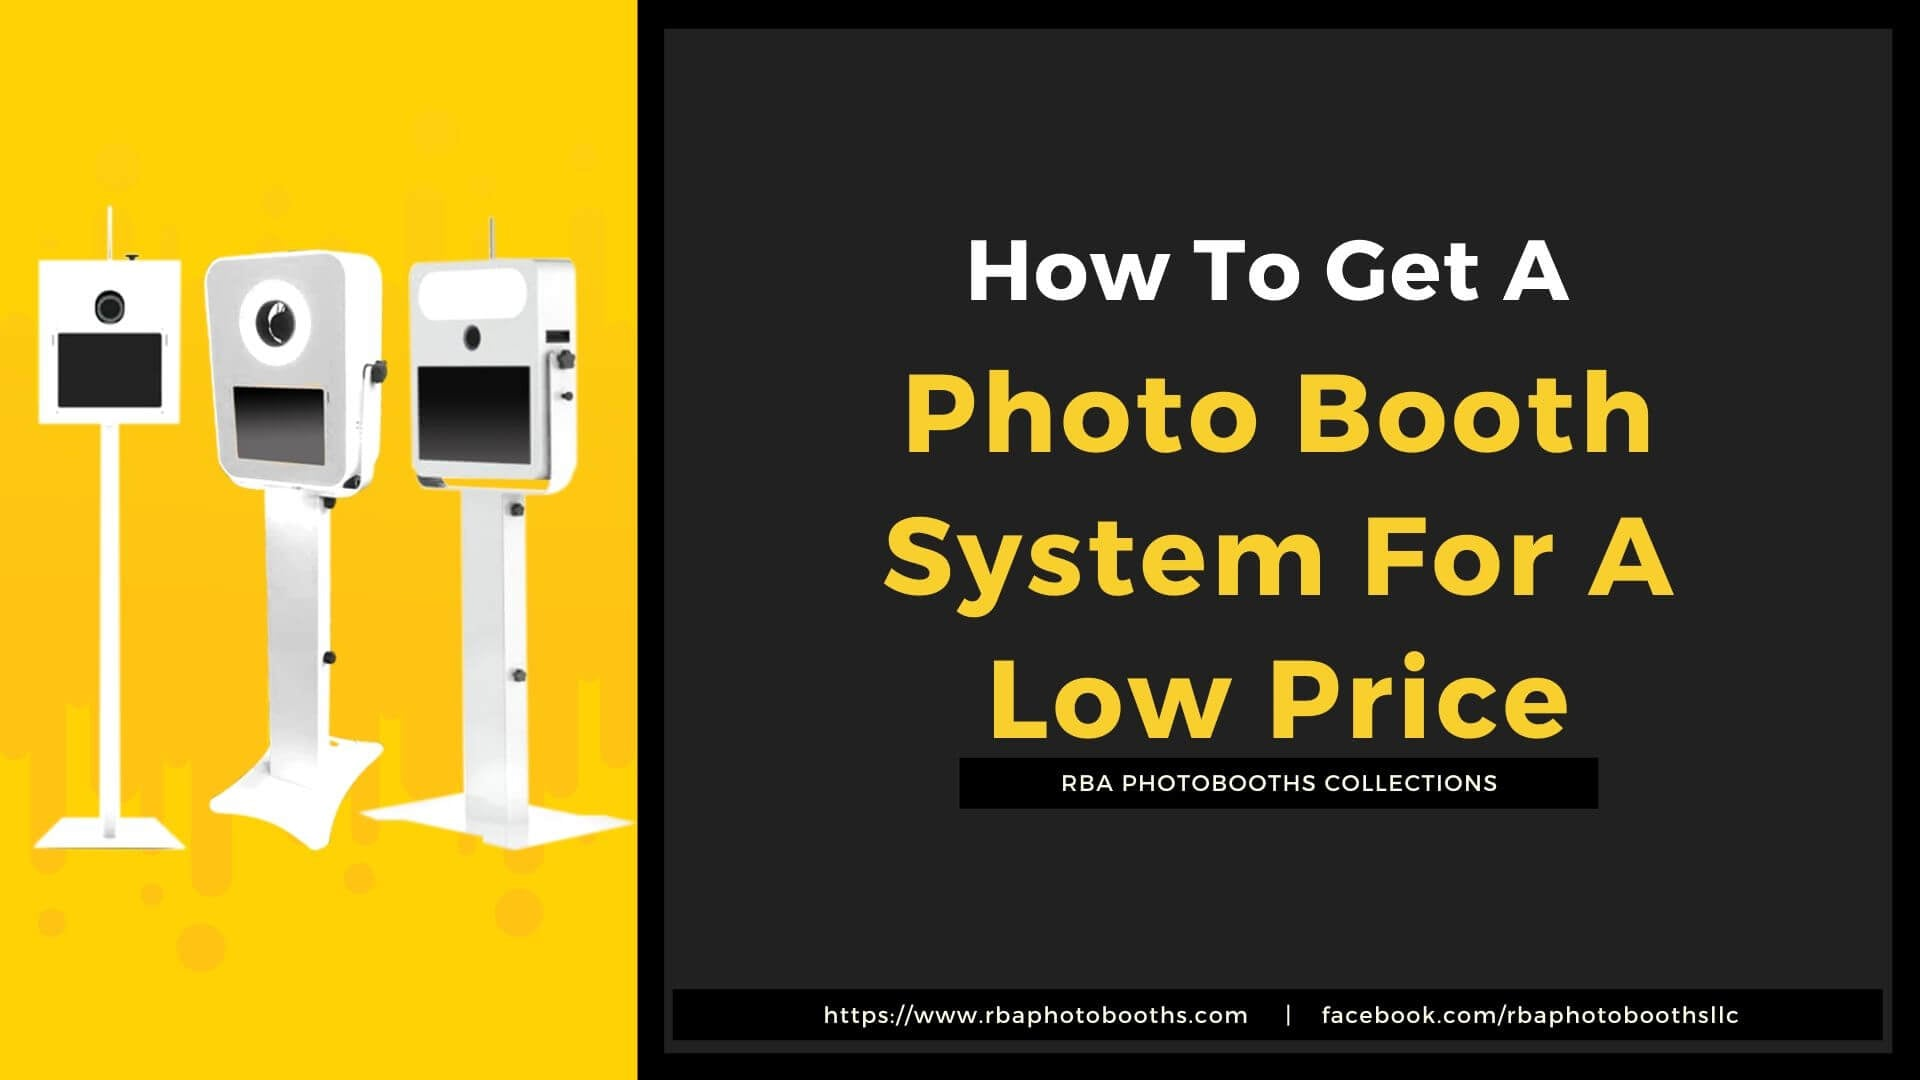 How To Get A Photo Booth System For A Low Price